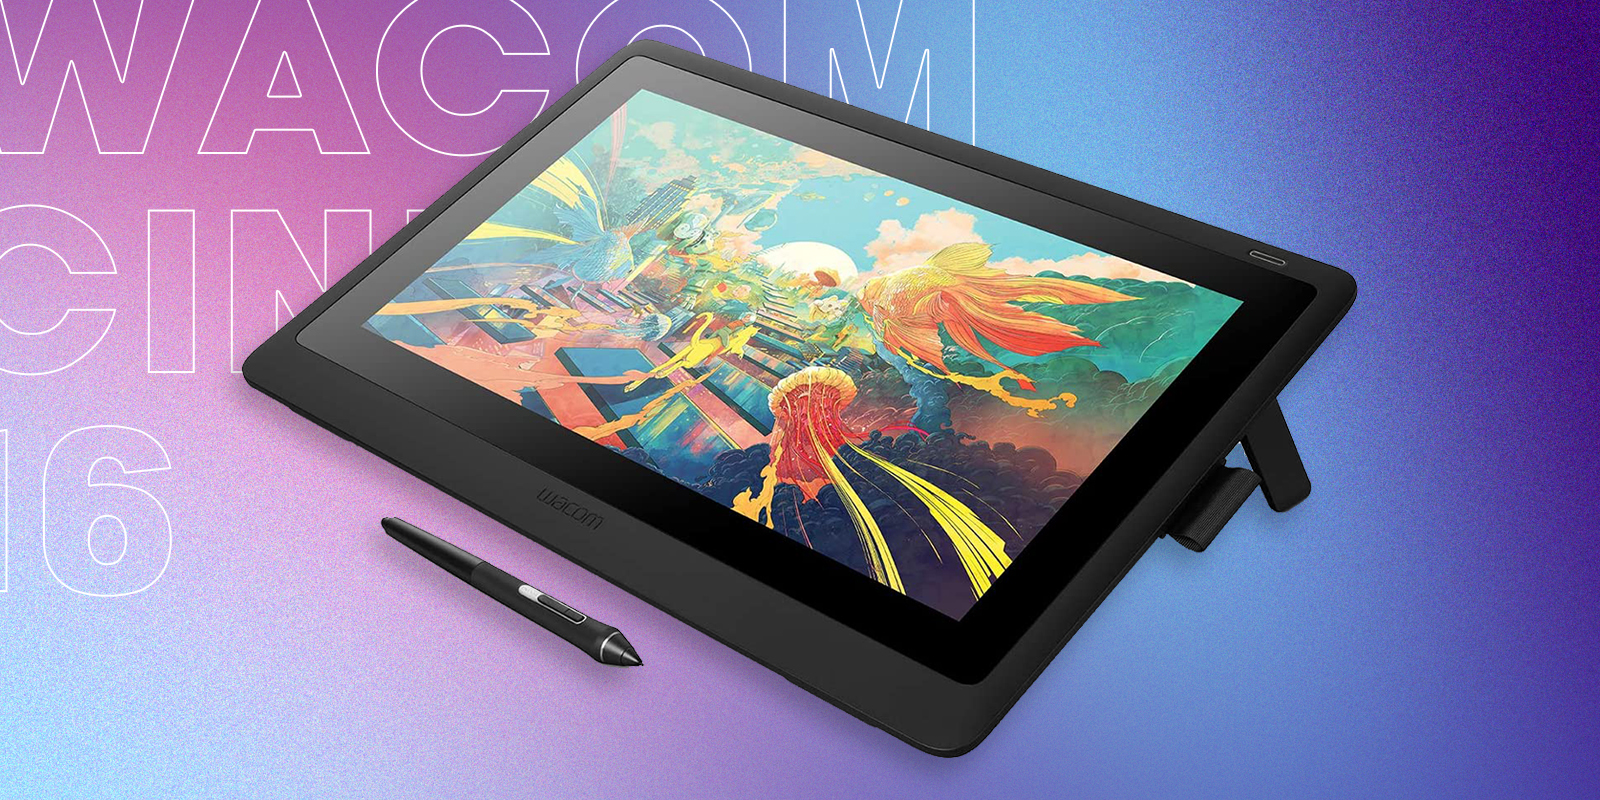 Wacom Cintiq 16 Great Value For Price Drawing Tablet